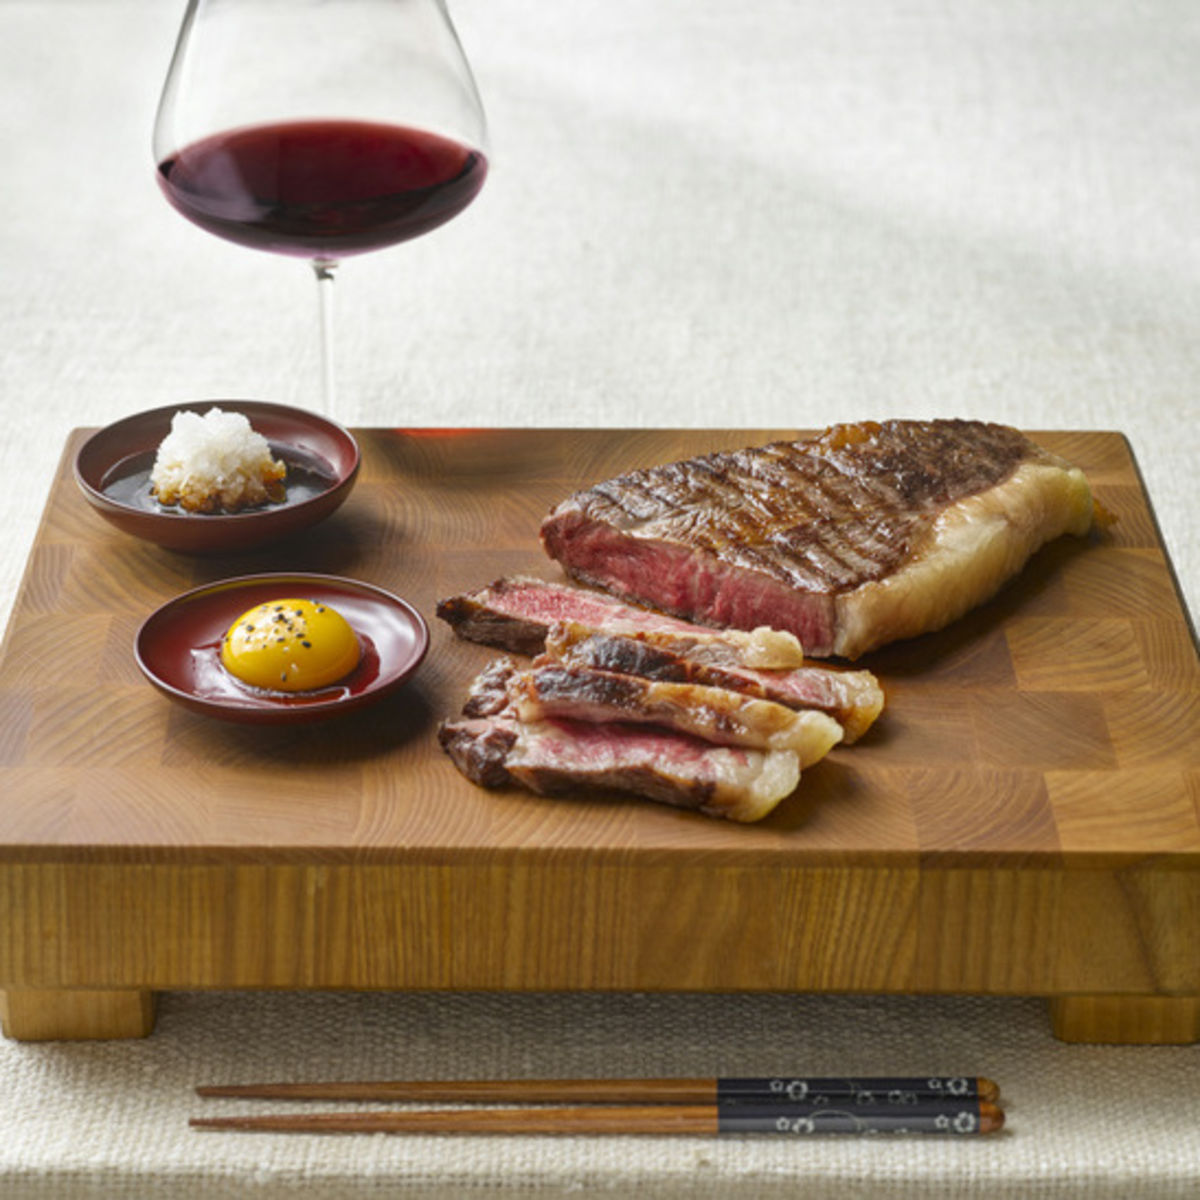 The picture shows wagyu beef and a glass of red wine,